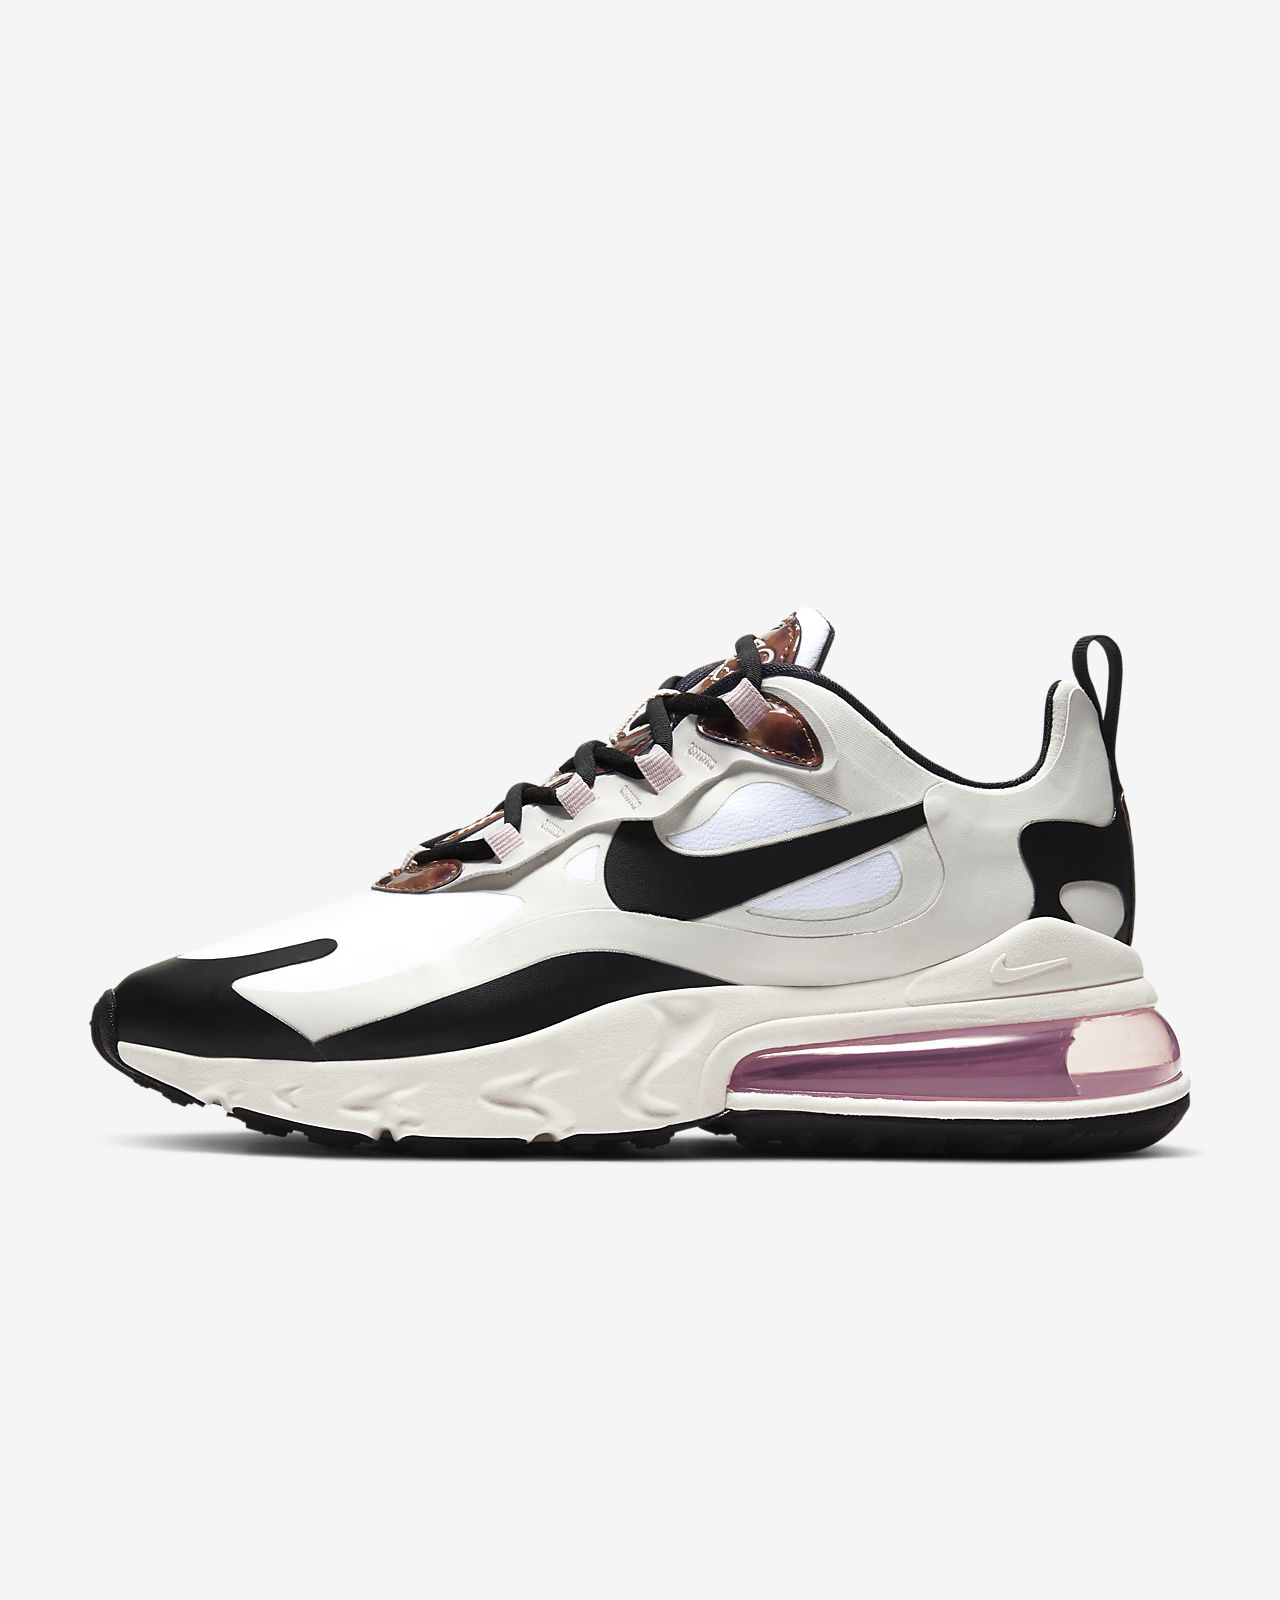 Nike Air Max 270 React Tortoise Shell Women's Shoe